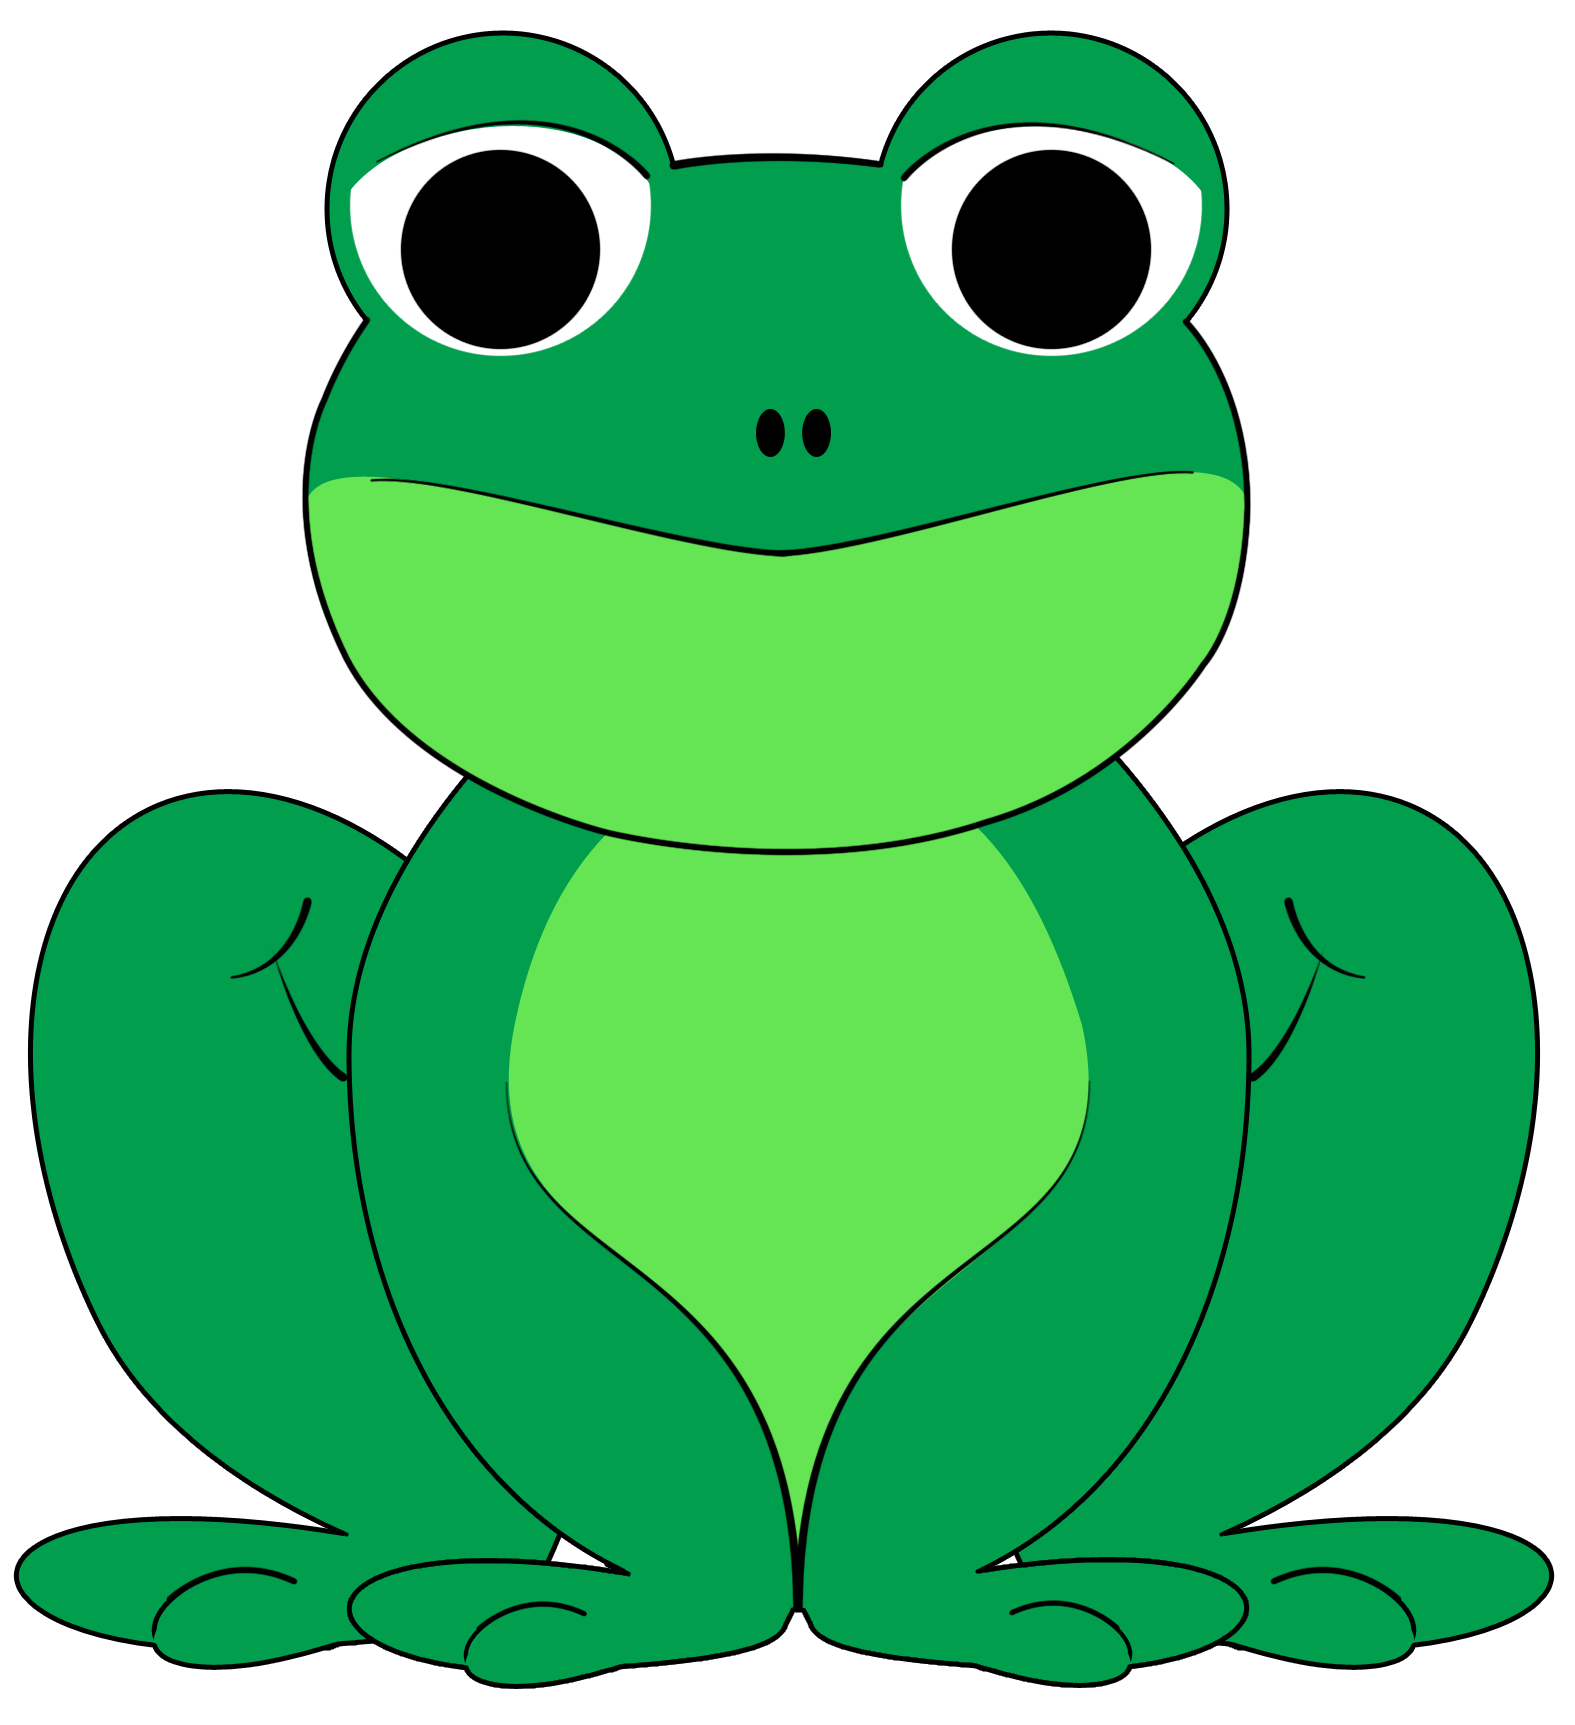 Frogs clipart printable. Frog prince silhouette at